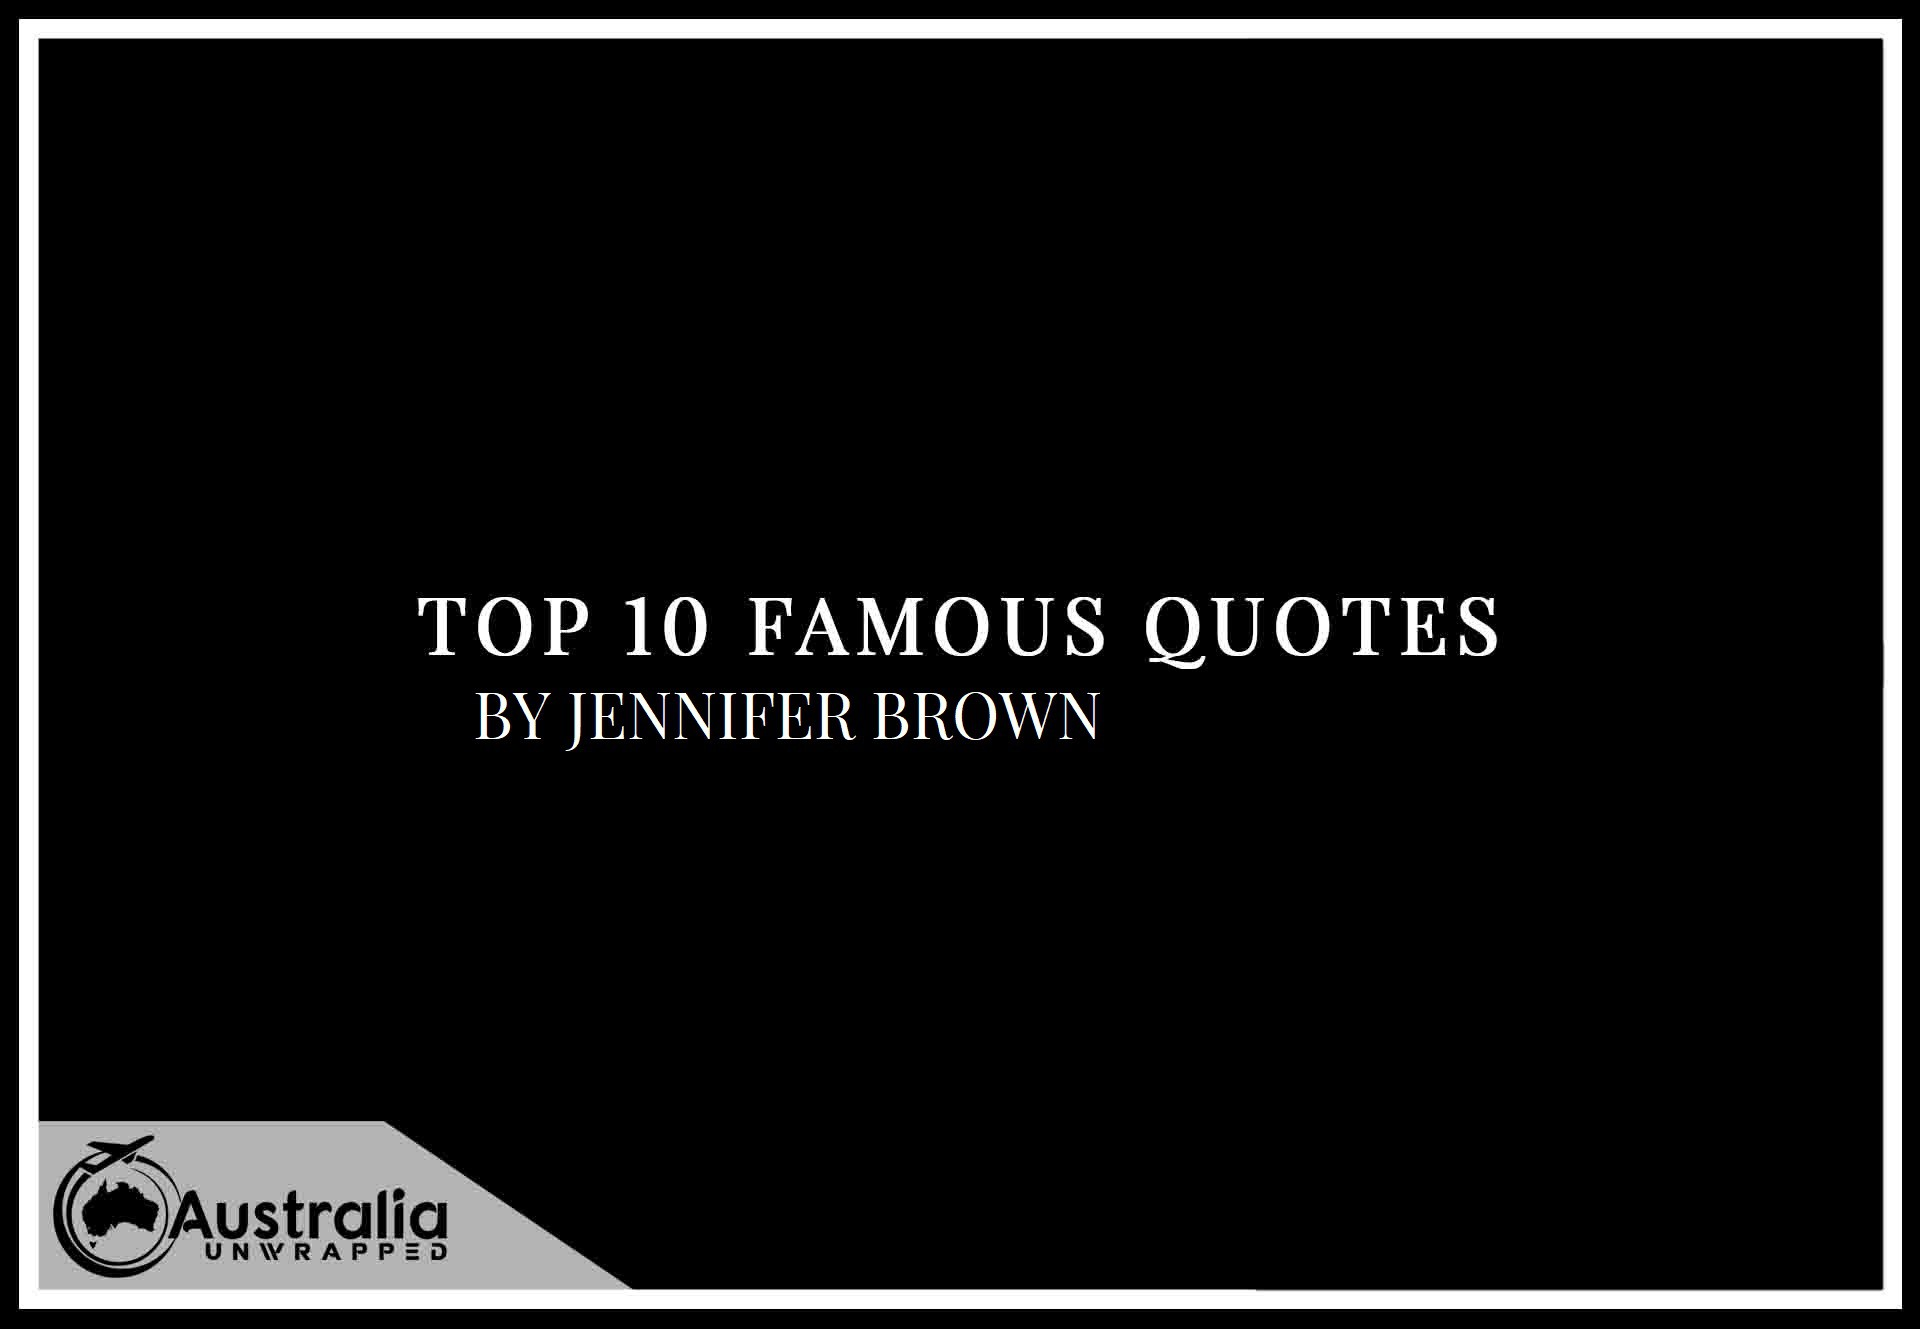 Top 10 Famous Quotes by Author Jennifer Brown